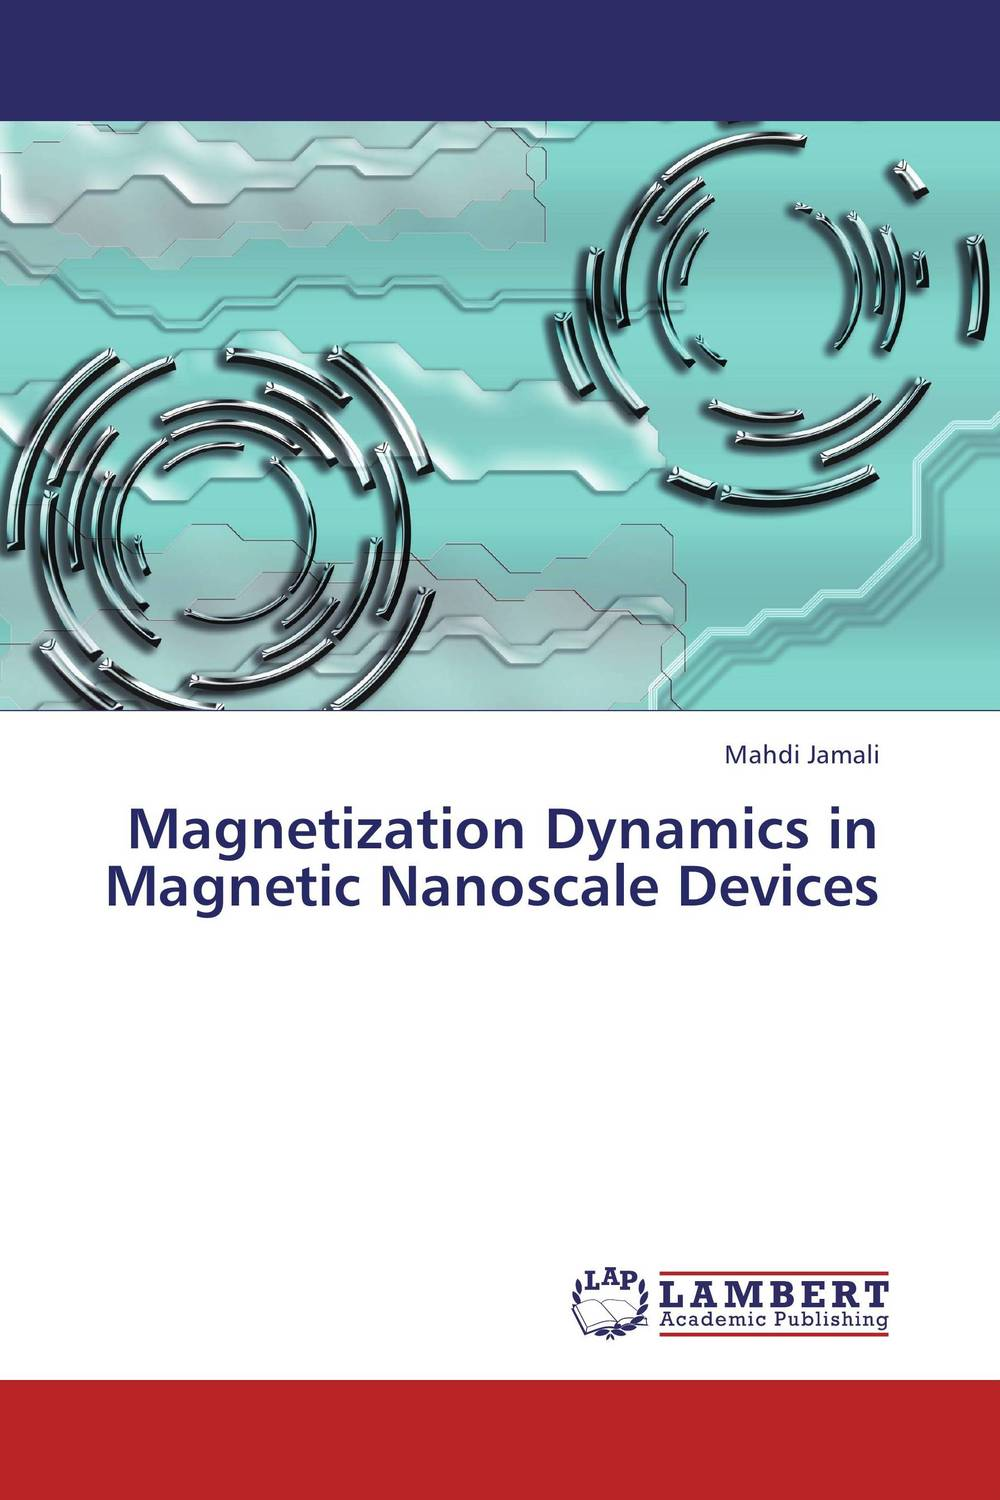 Magnetization Dynamics in Magnetic Nanoscale Devices